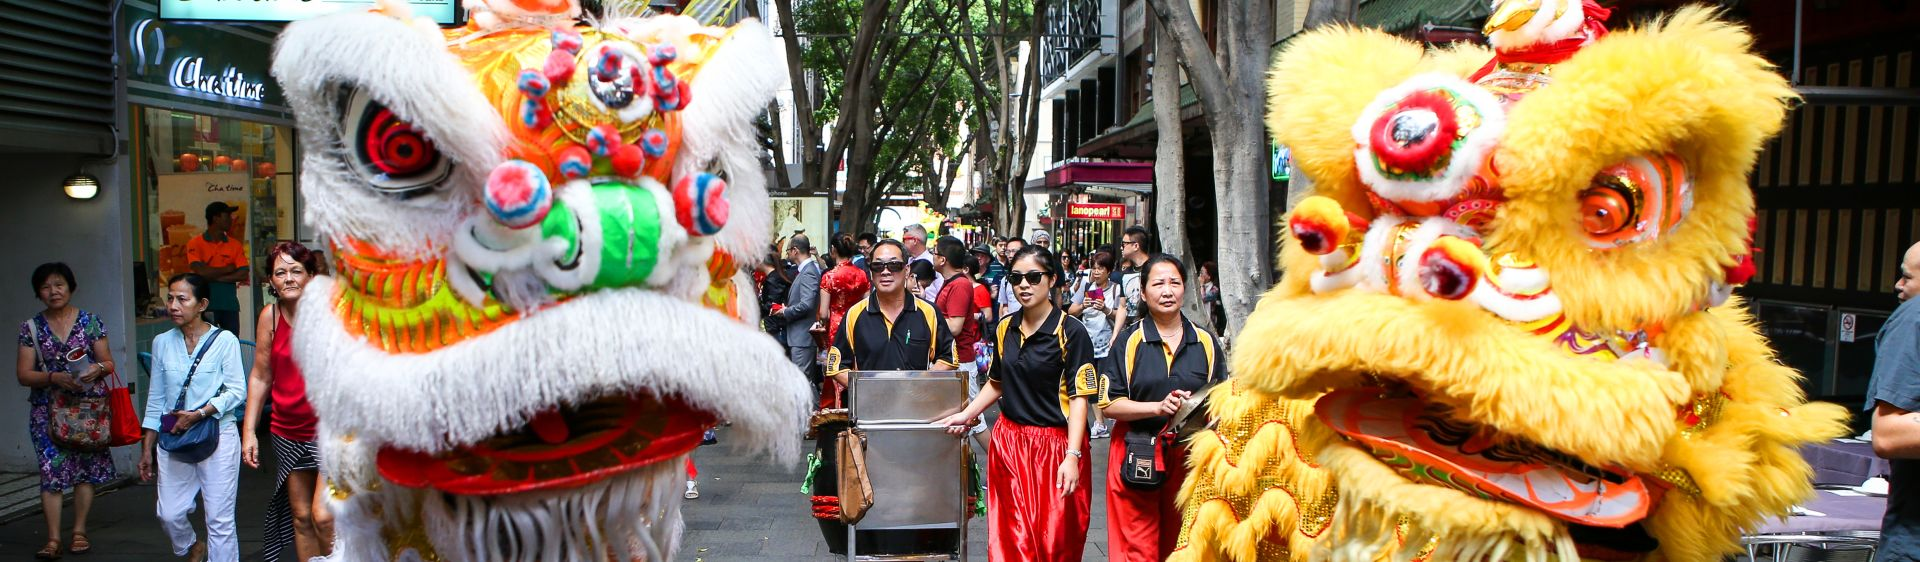 Chinese New Year Dragons, Chinatown, Sydney